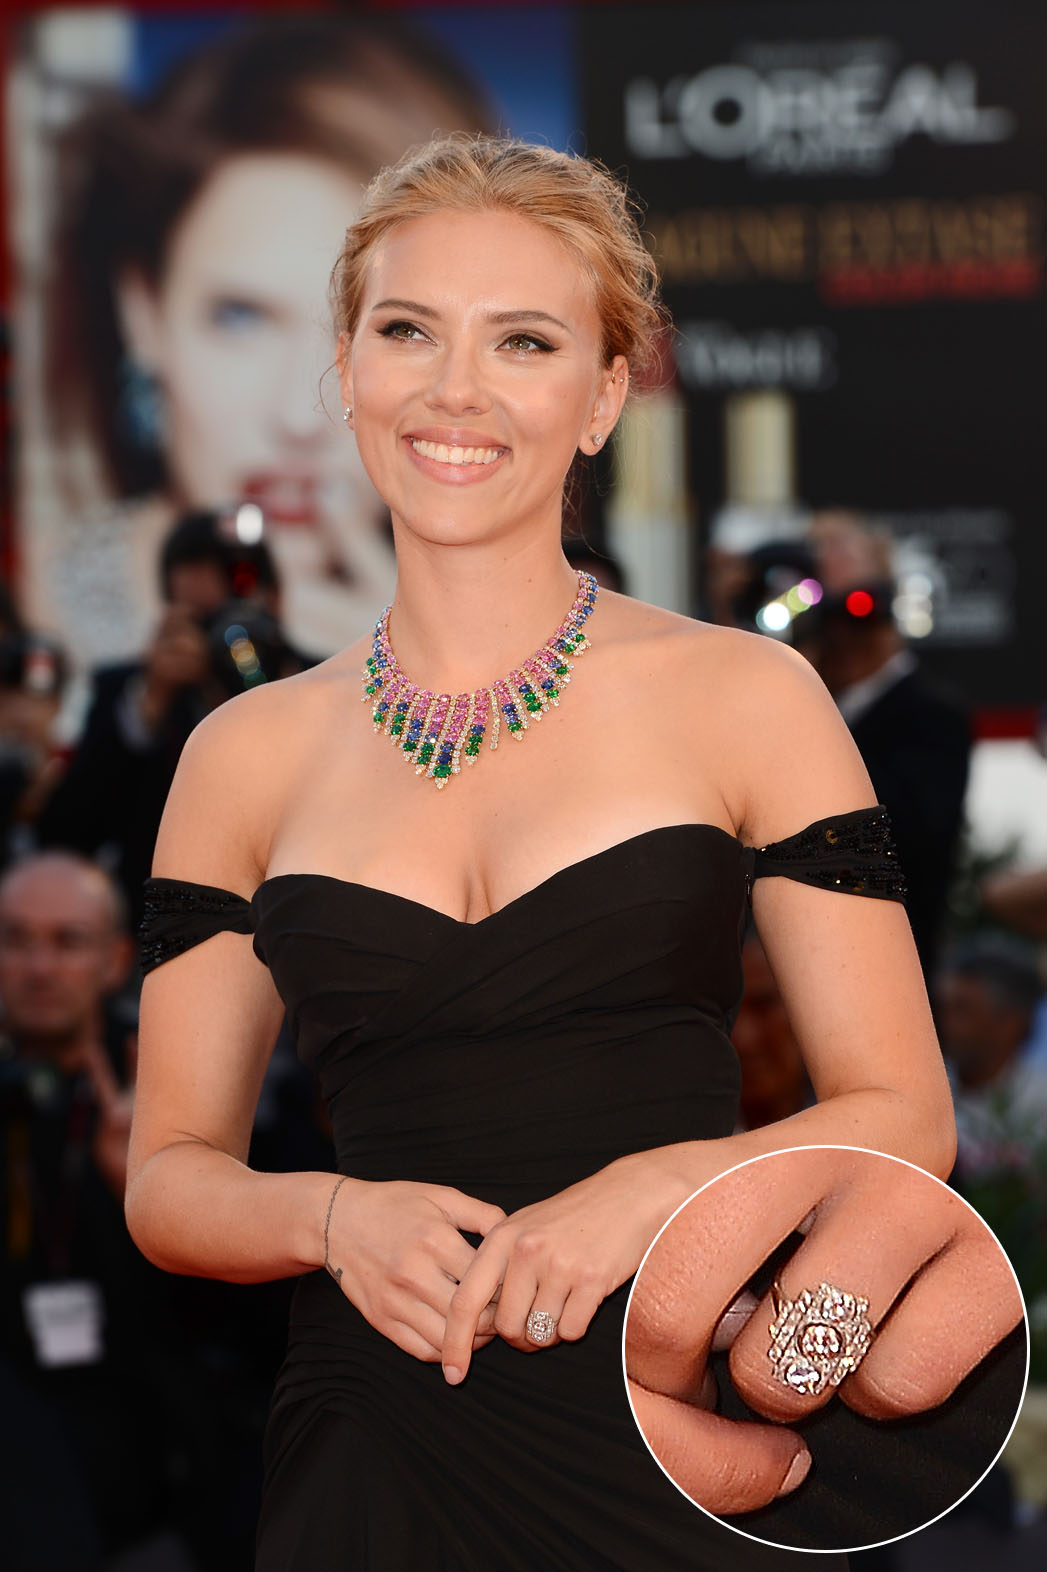 Scarlett Johansson Engagement Ring - P 2013